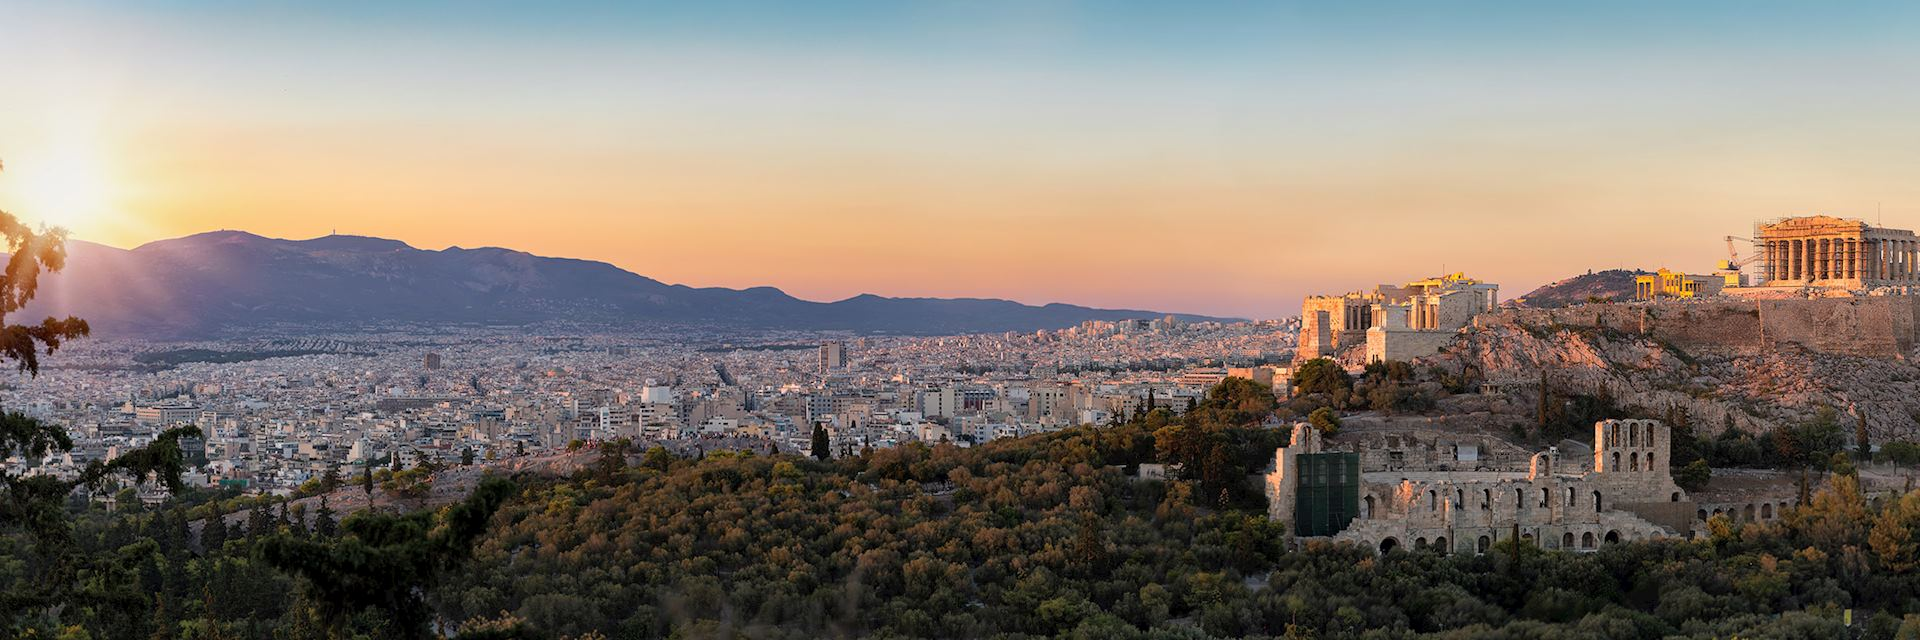 Panorama from the Parthenon and Acropolis to the skyline of Athens